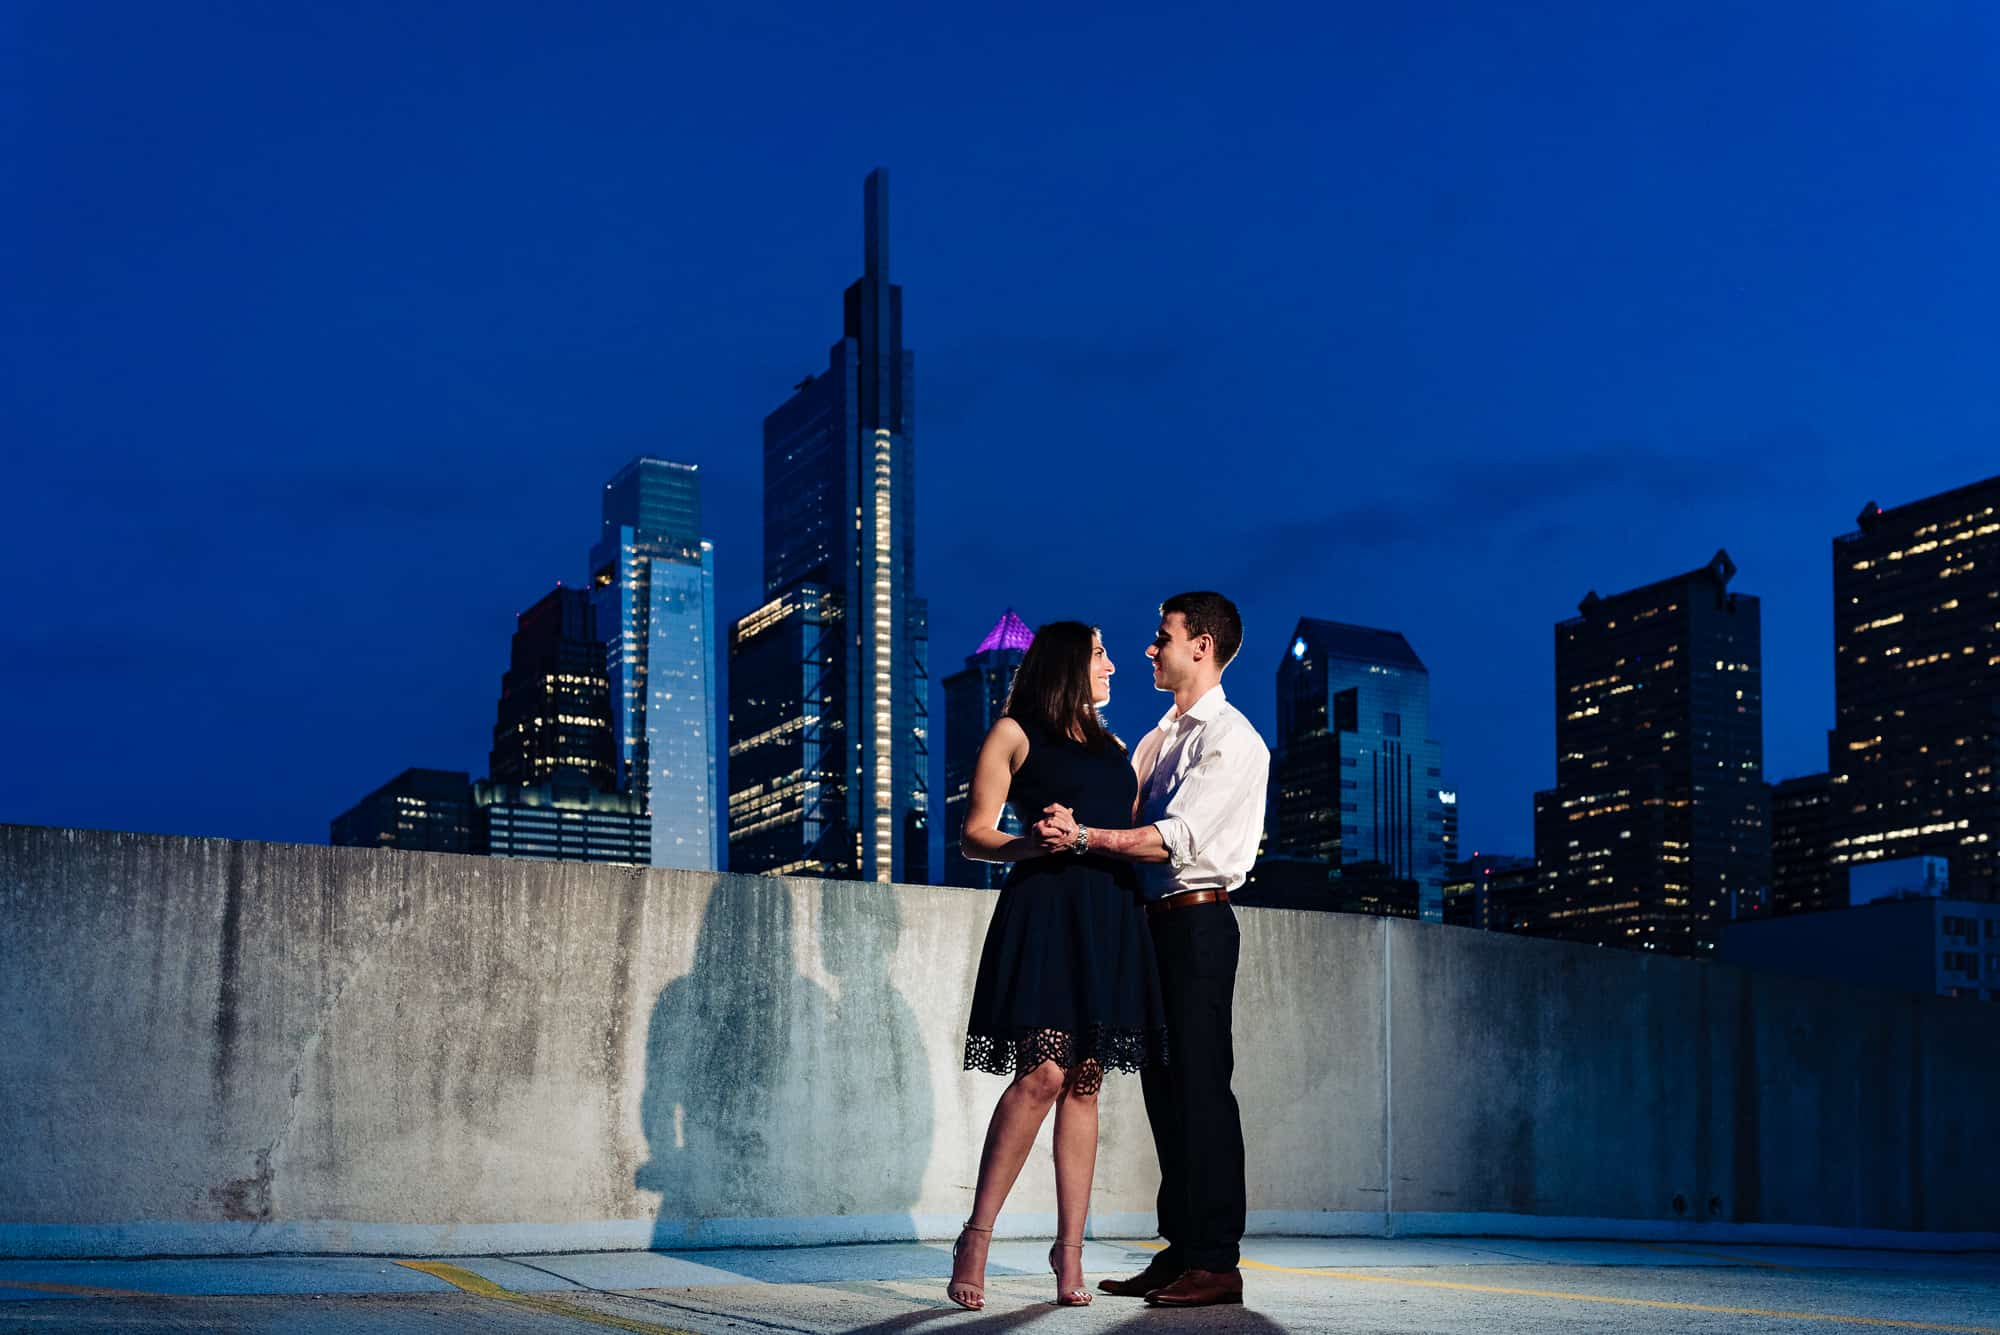 couple dancing on rooftop at night